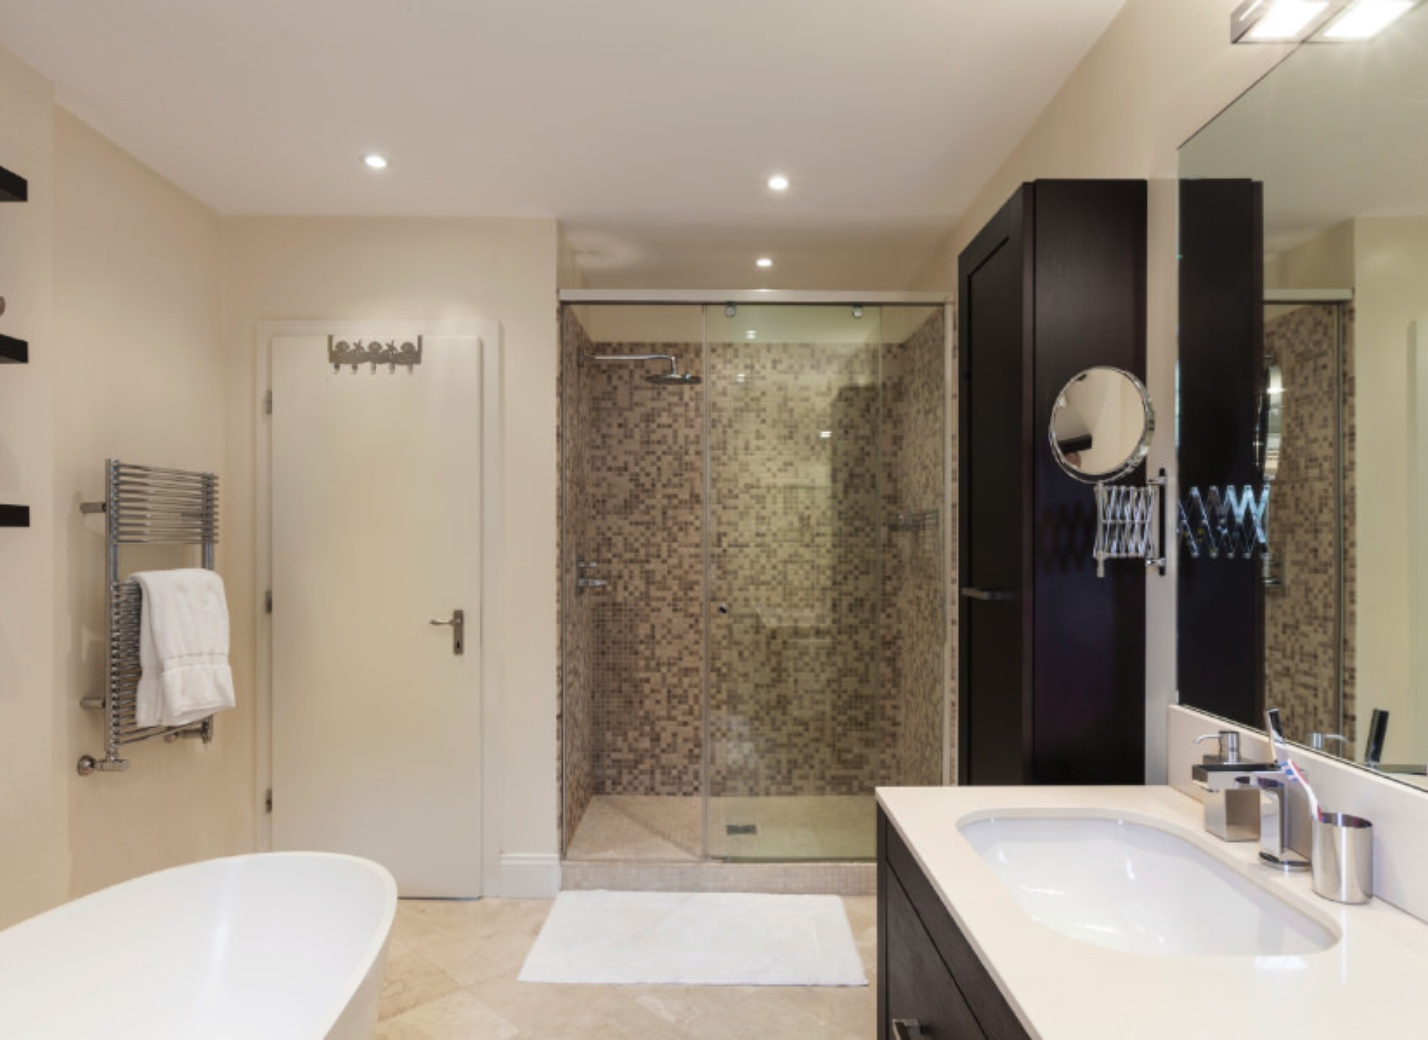 bathroom remodeling companies. Bathroom Renovations In Pequannock, NJ Remodeling Companies